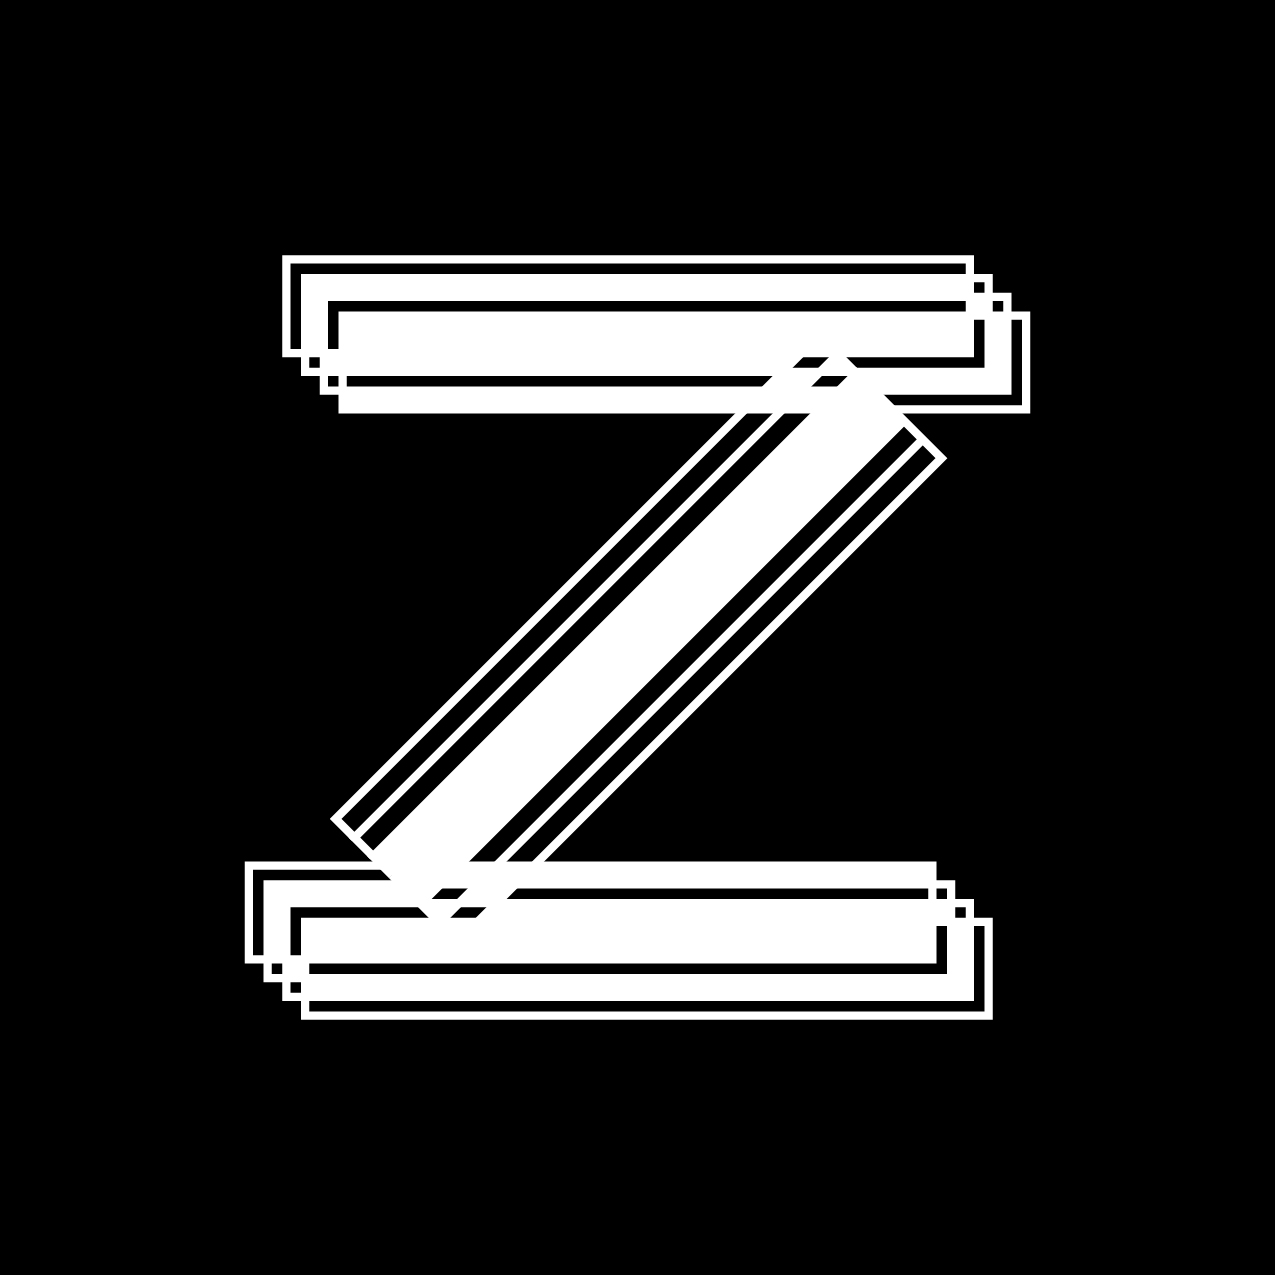 Letter Z5 Design by Furia